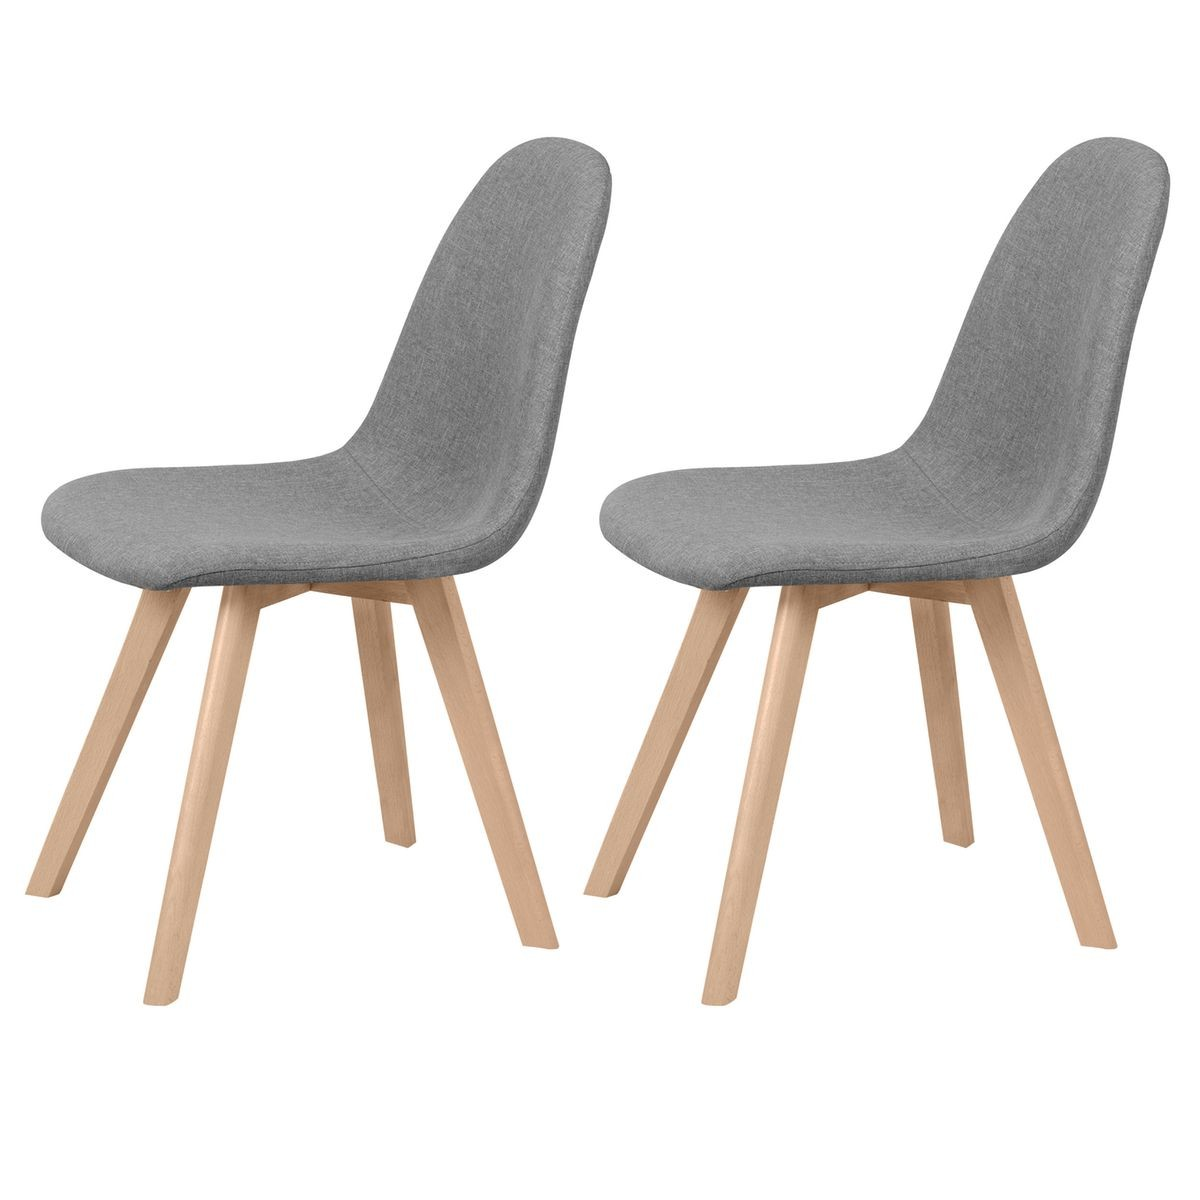 Chaise Scandinave Coque Grise Chaise Skandi Tissu Grise Lot De 2 Taille Taille